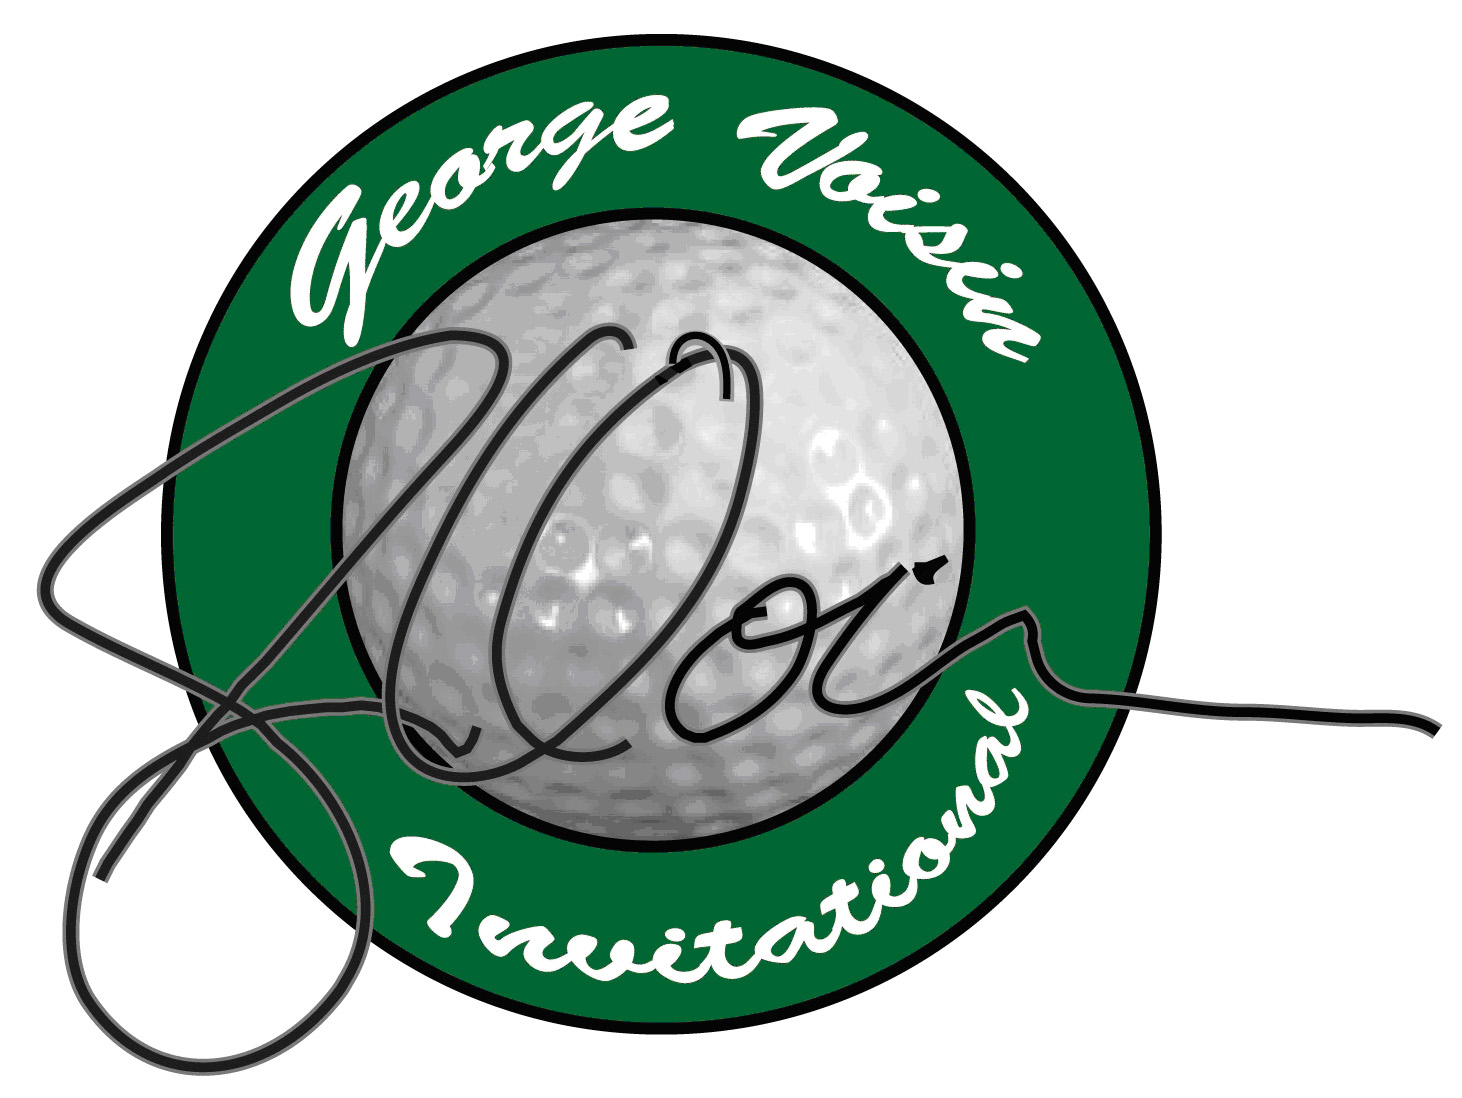 George Voisin Invitational